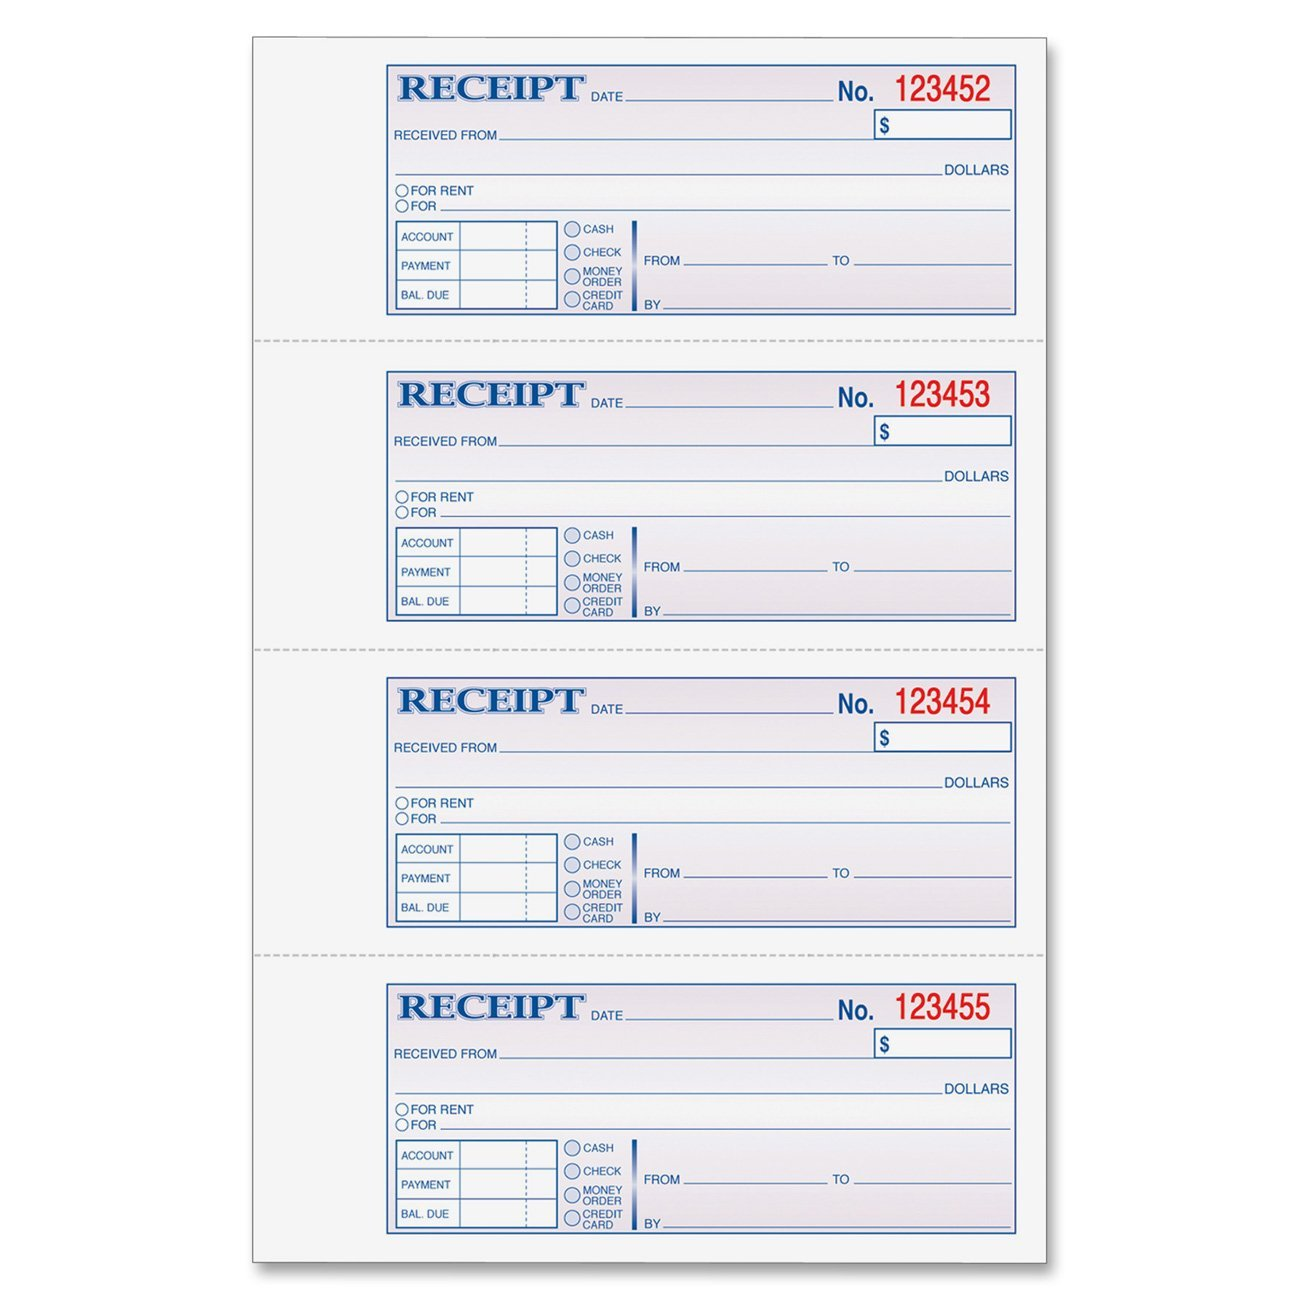 money and rent receipt 7 63 x 11 inches 2 parts carbonless 4 per